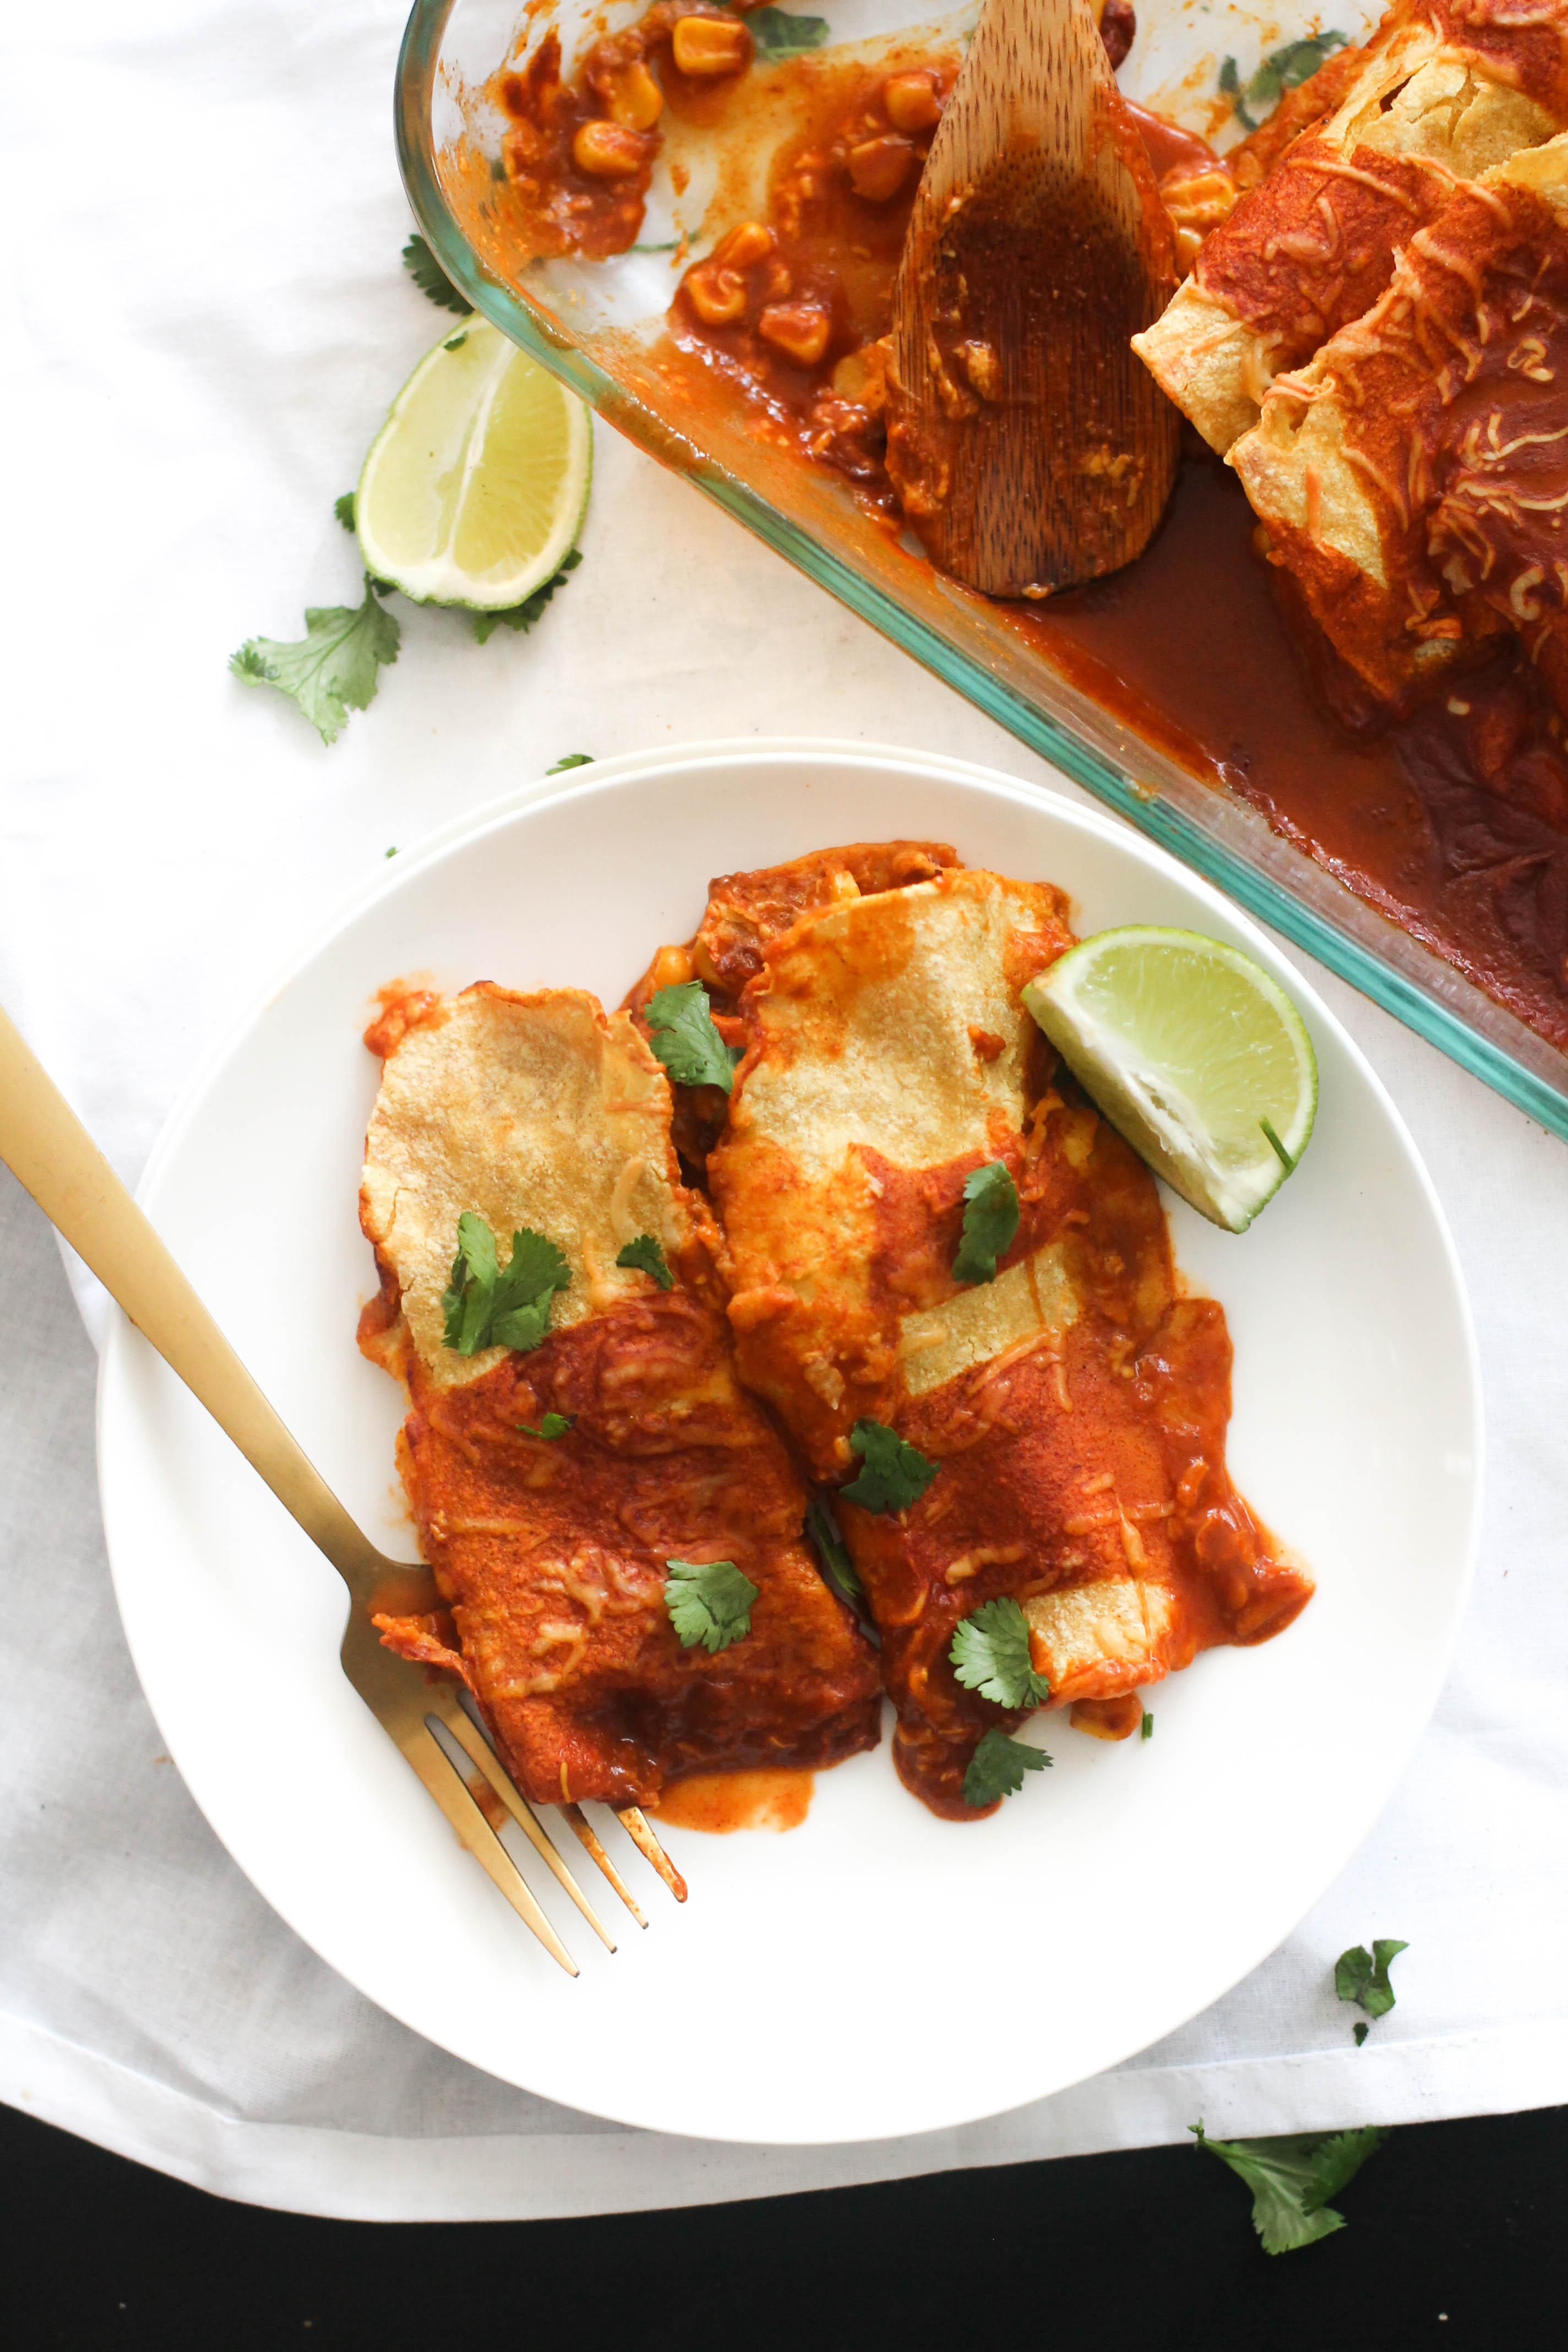 These roasted corn and sweet potato enchilada's are the perfect cozy dinner! They're made with minimal, natural ingredients, come together in under an hour, and are incredibly easy to make.